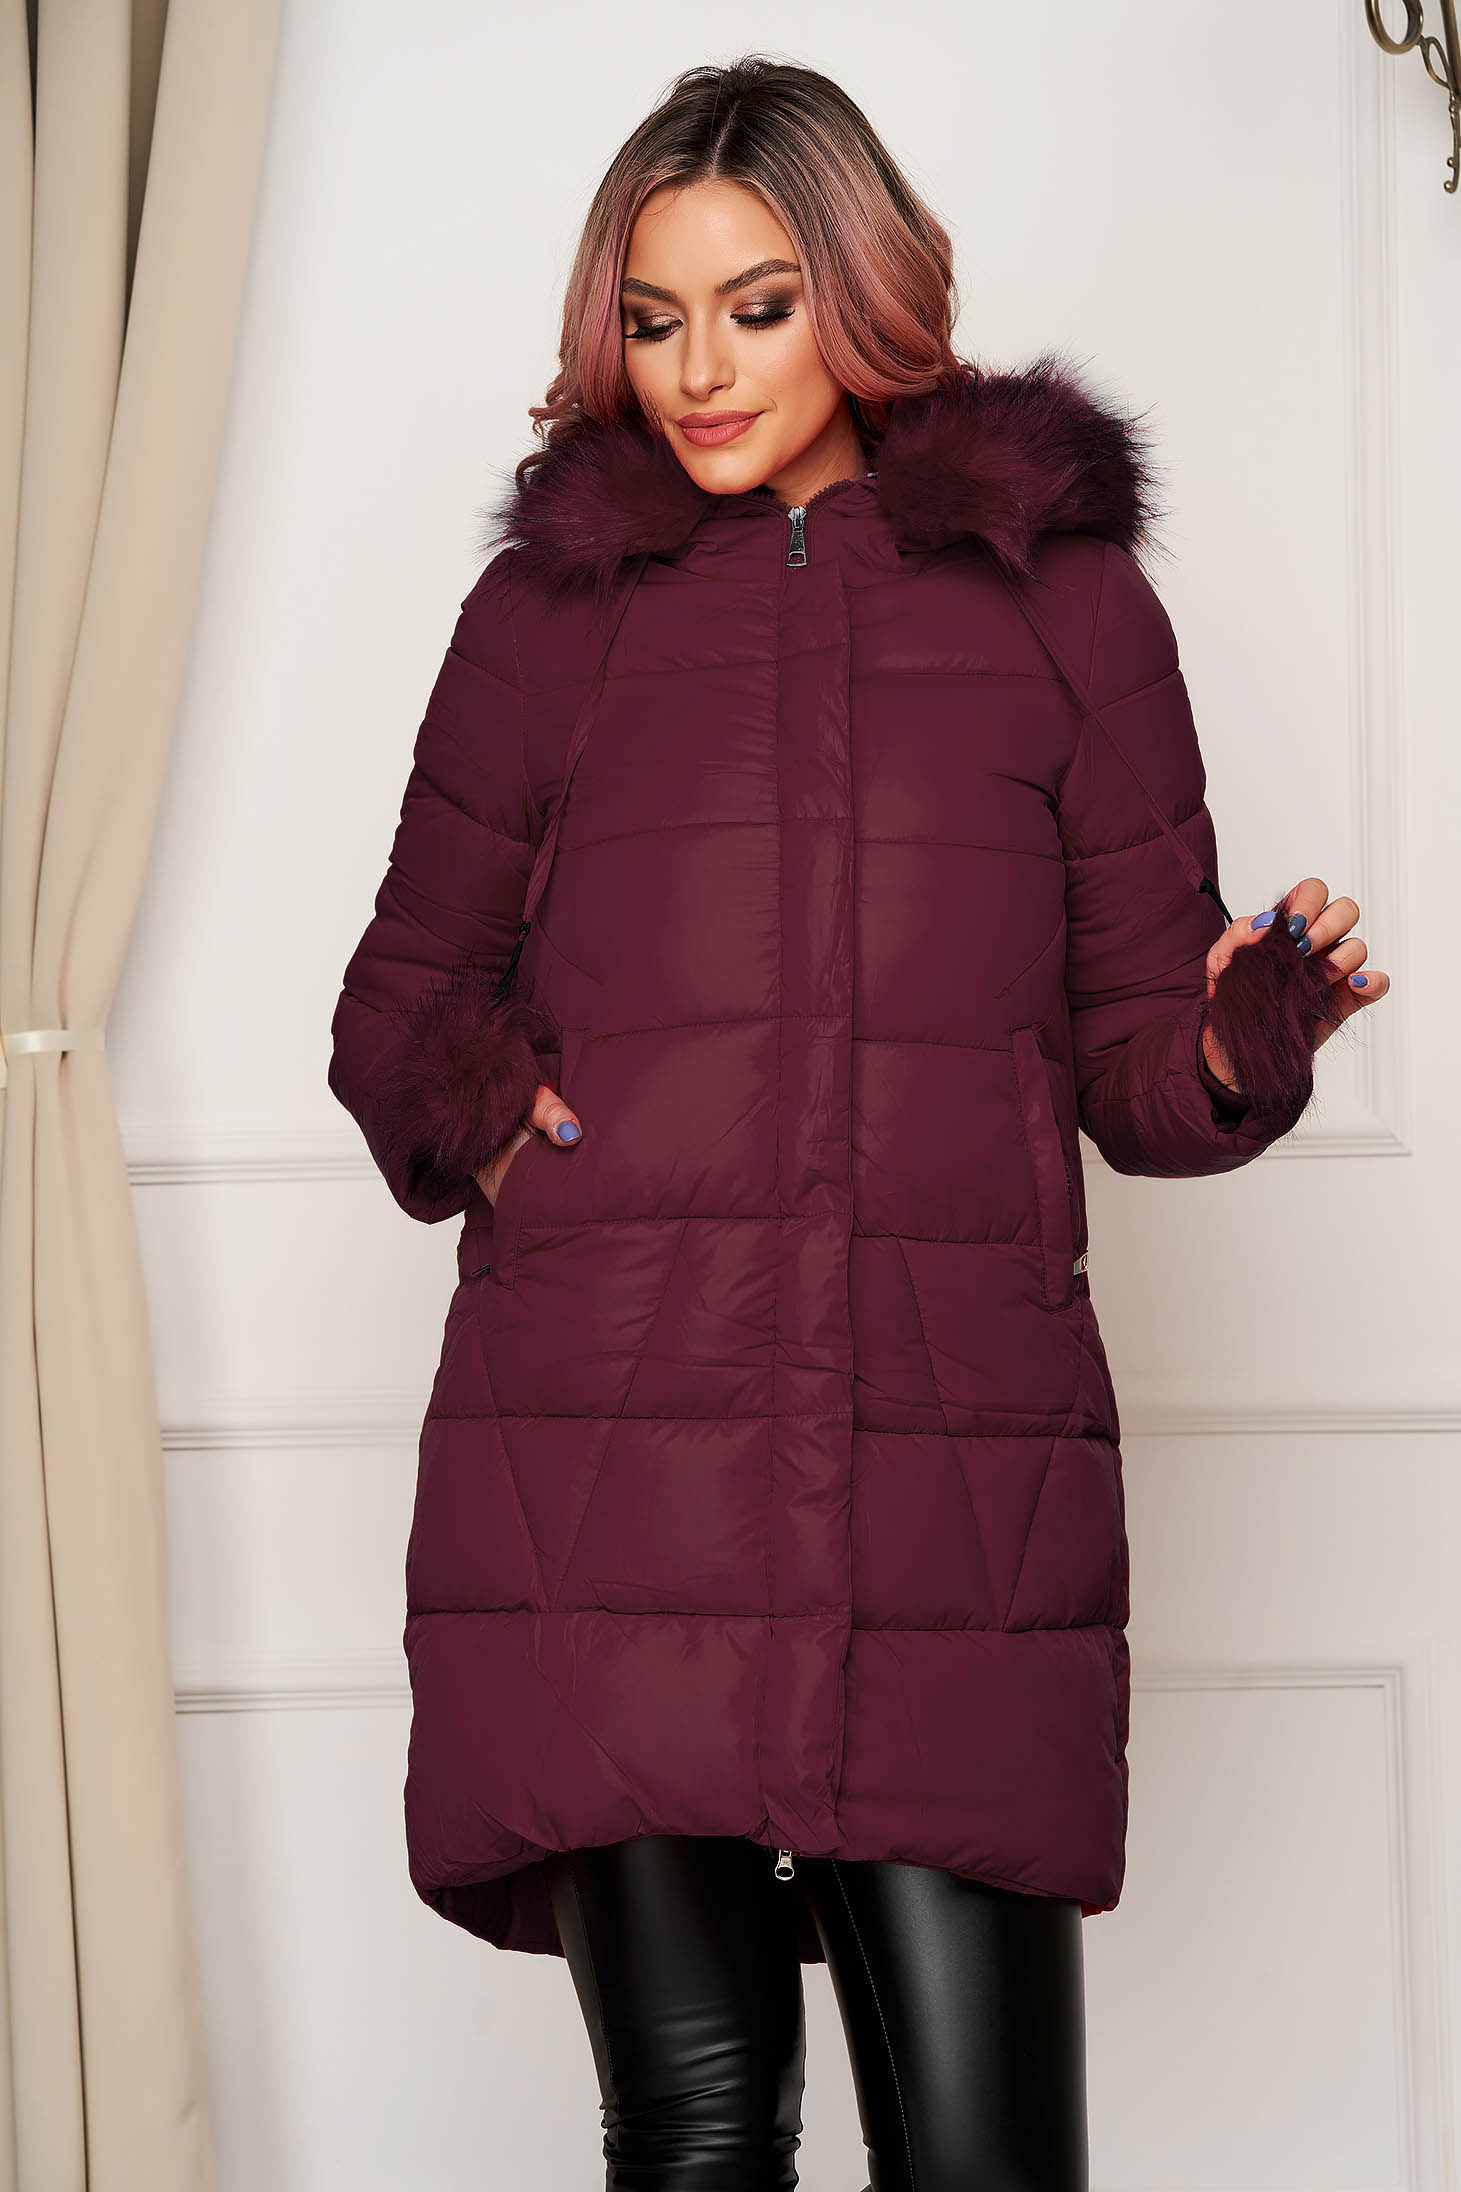 Jacket burgundy from slicker with furry hood with pockets long with tassels